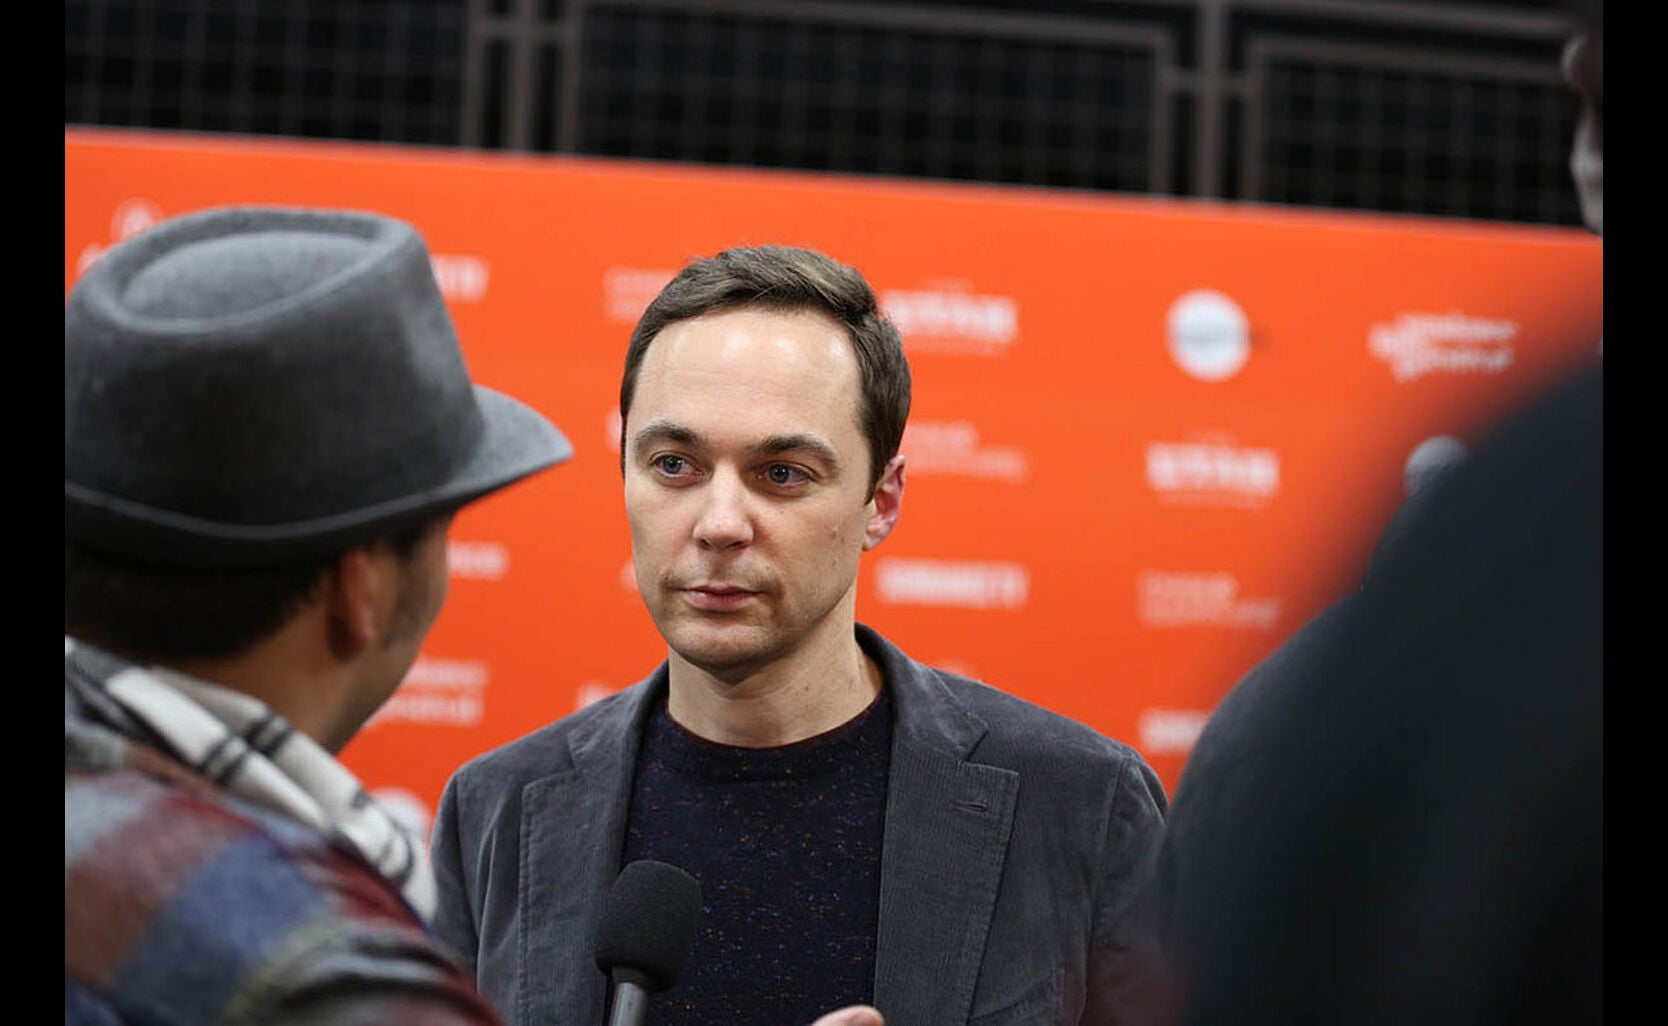 Acrtor Jim Parsons at Sundance 2018